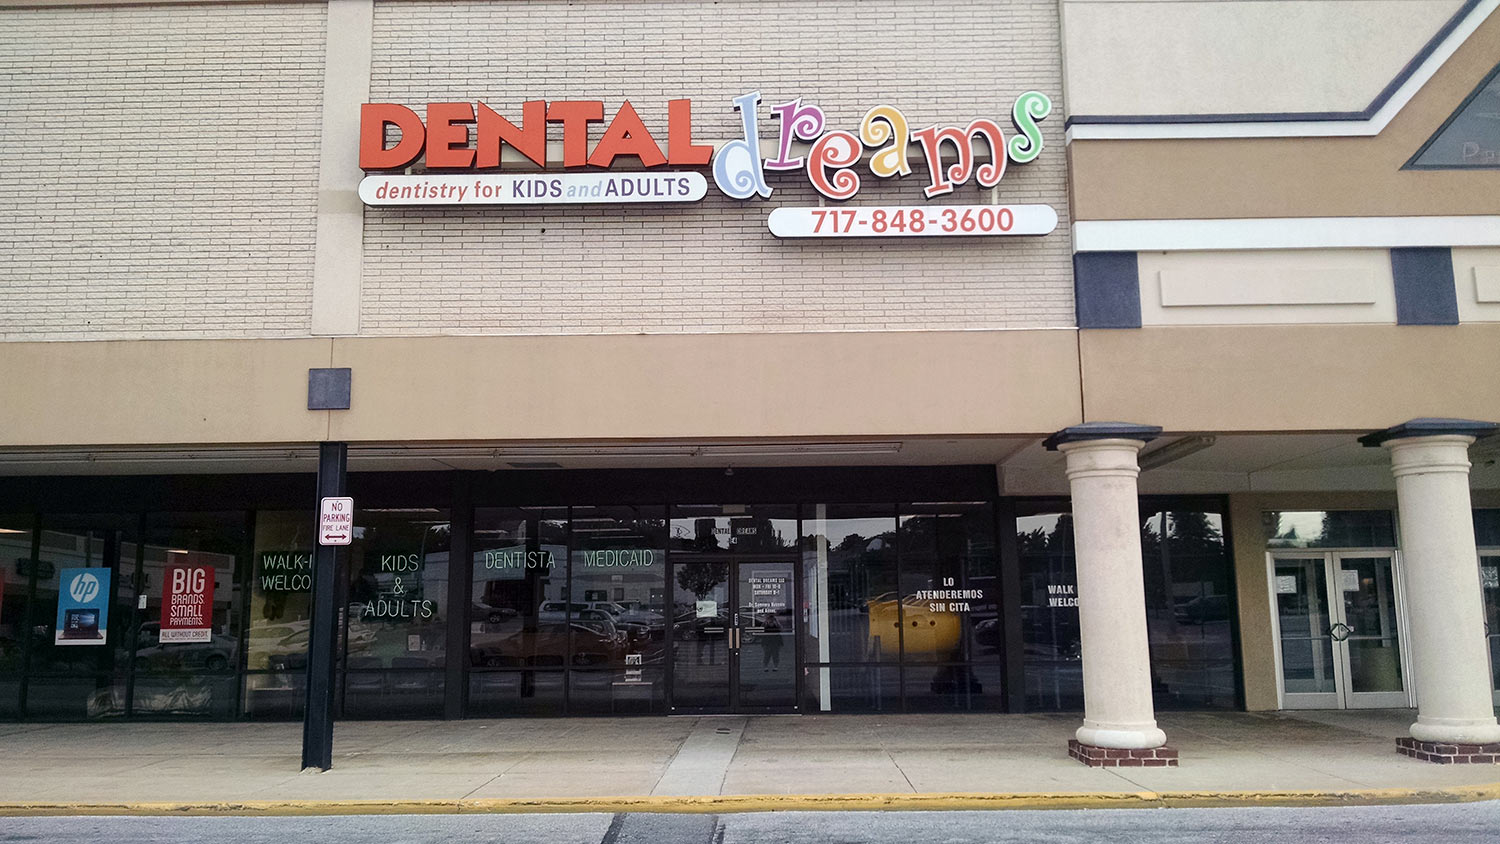 Photo of Dental Dreams - Loucks Rd in York, PA 17404